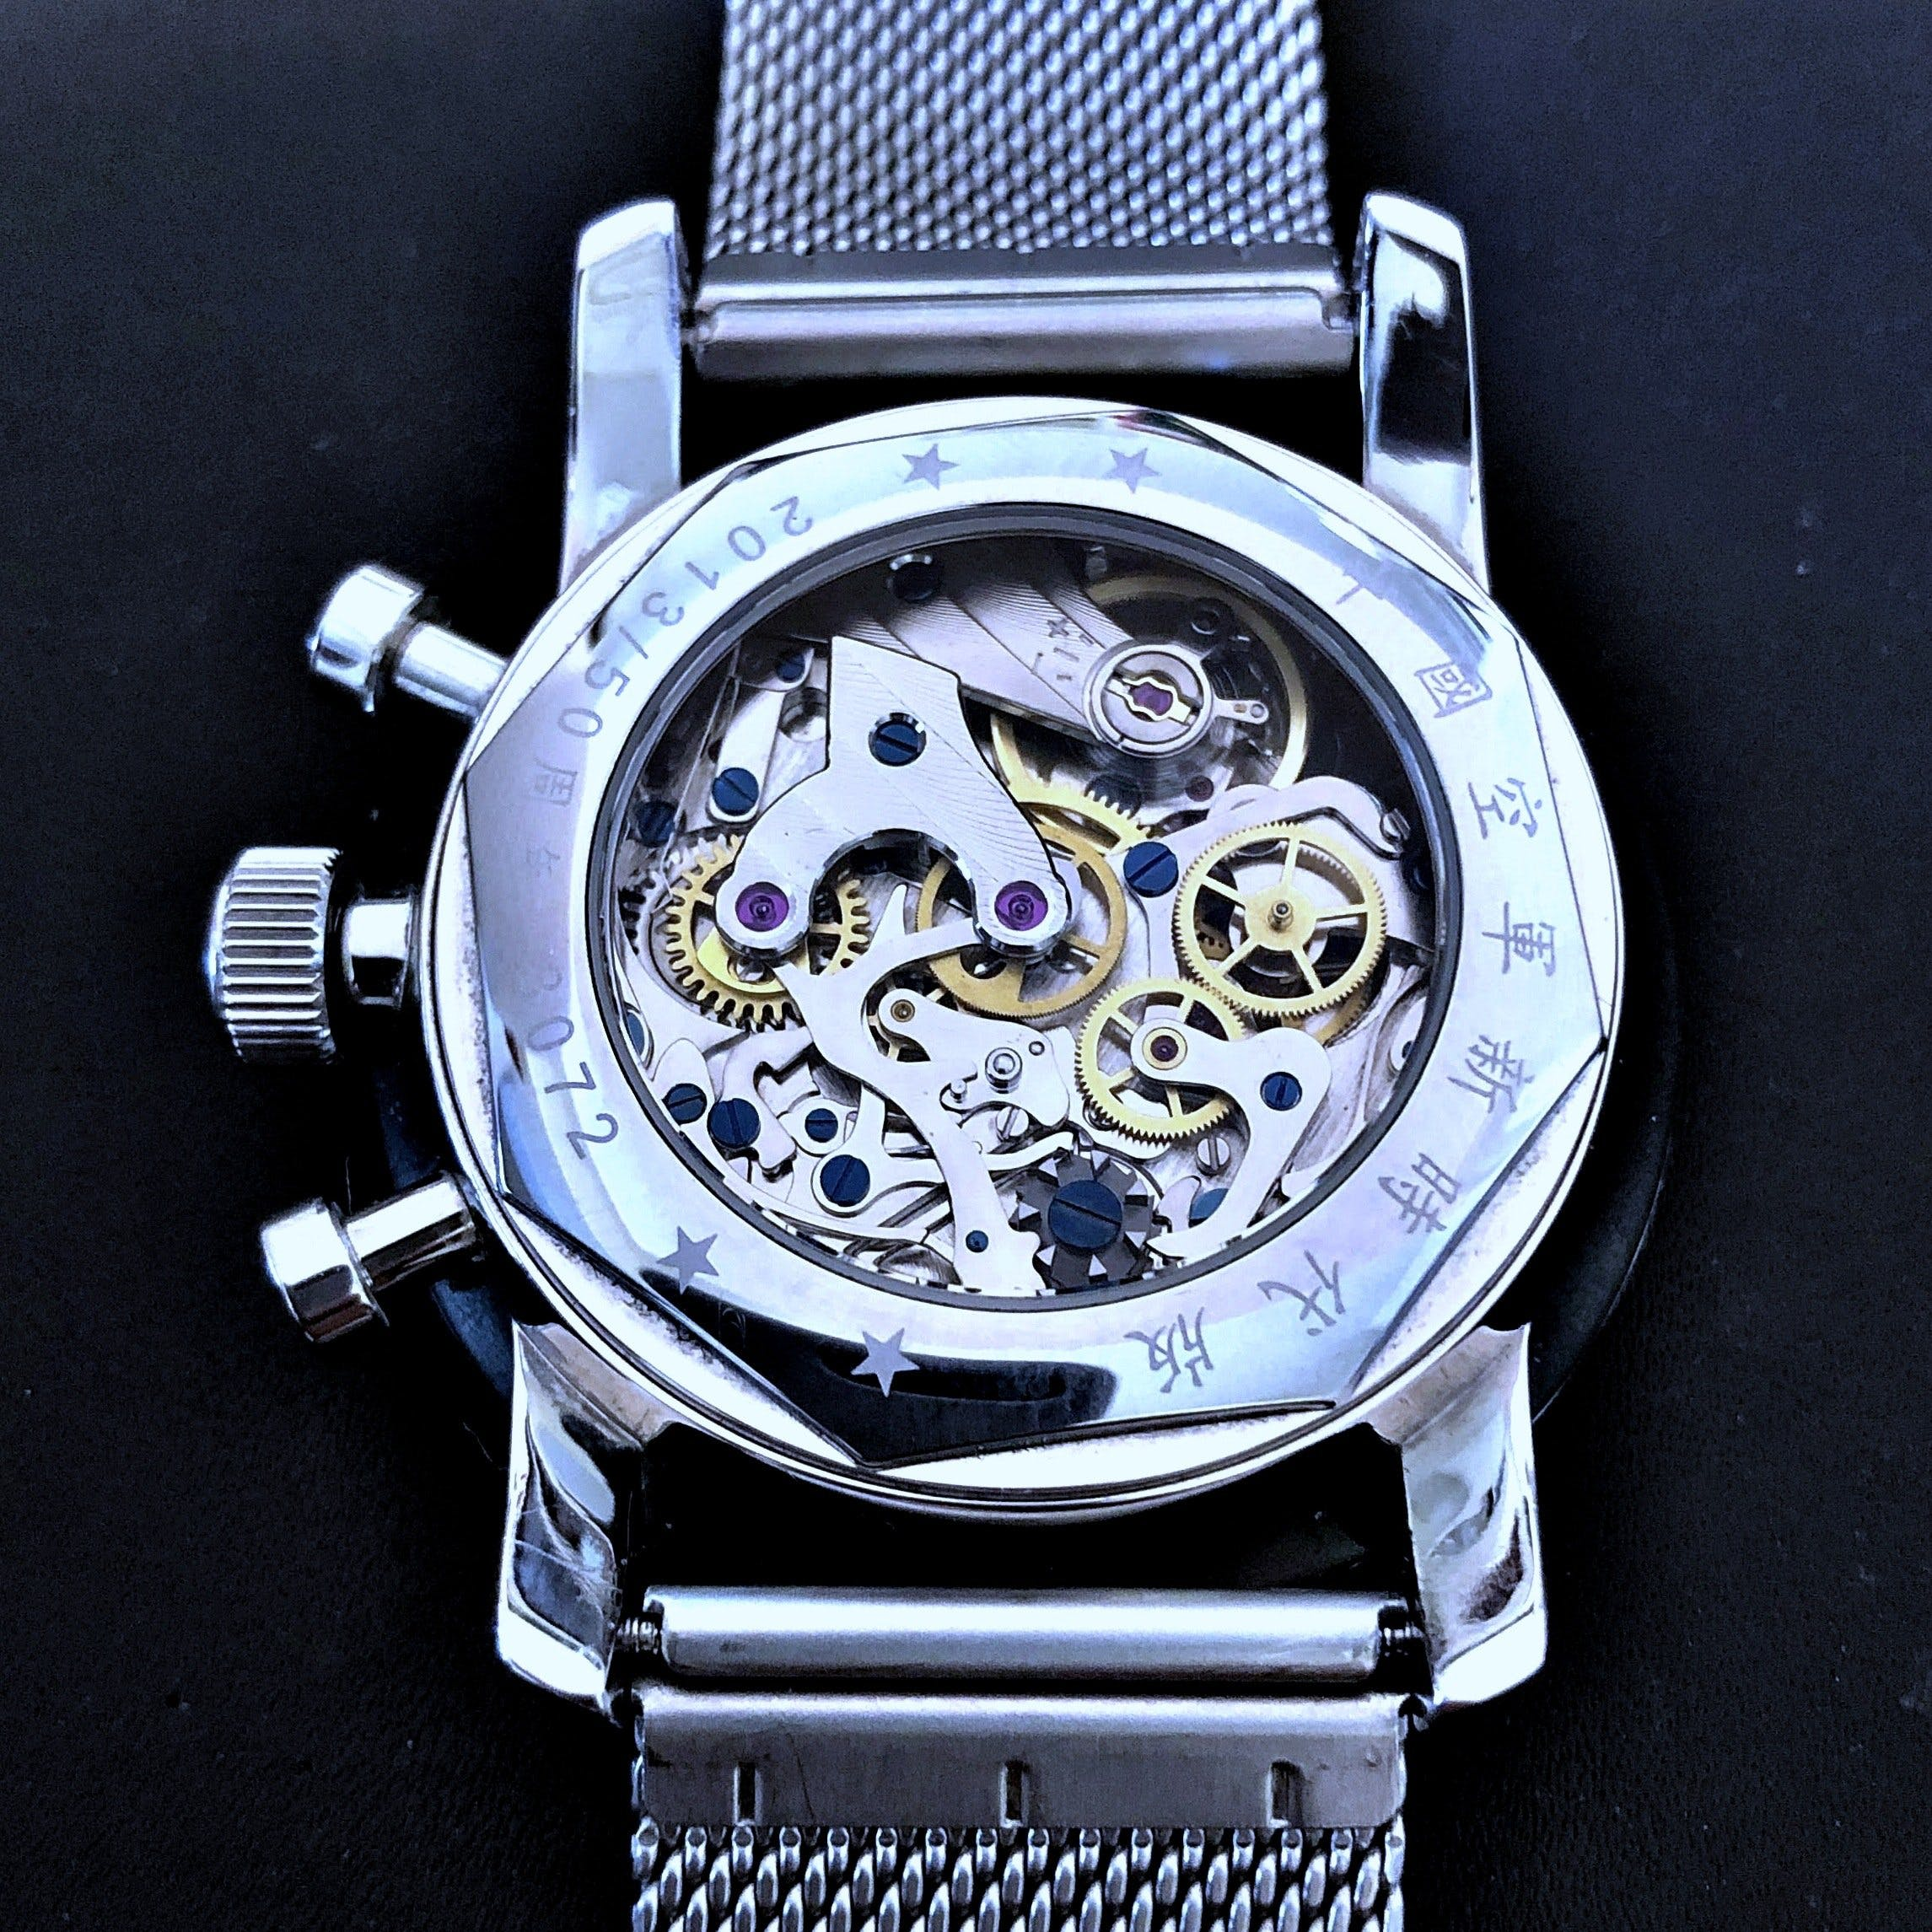 963 Re-Issue Red Star Chronograph mit Kaliber ST1901